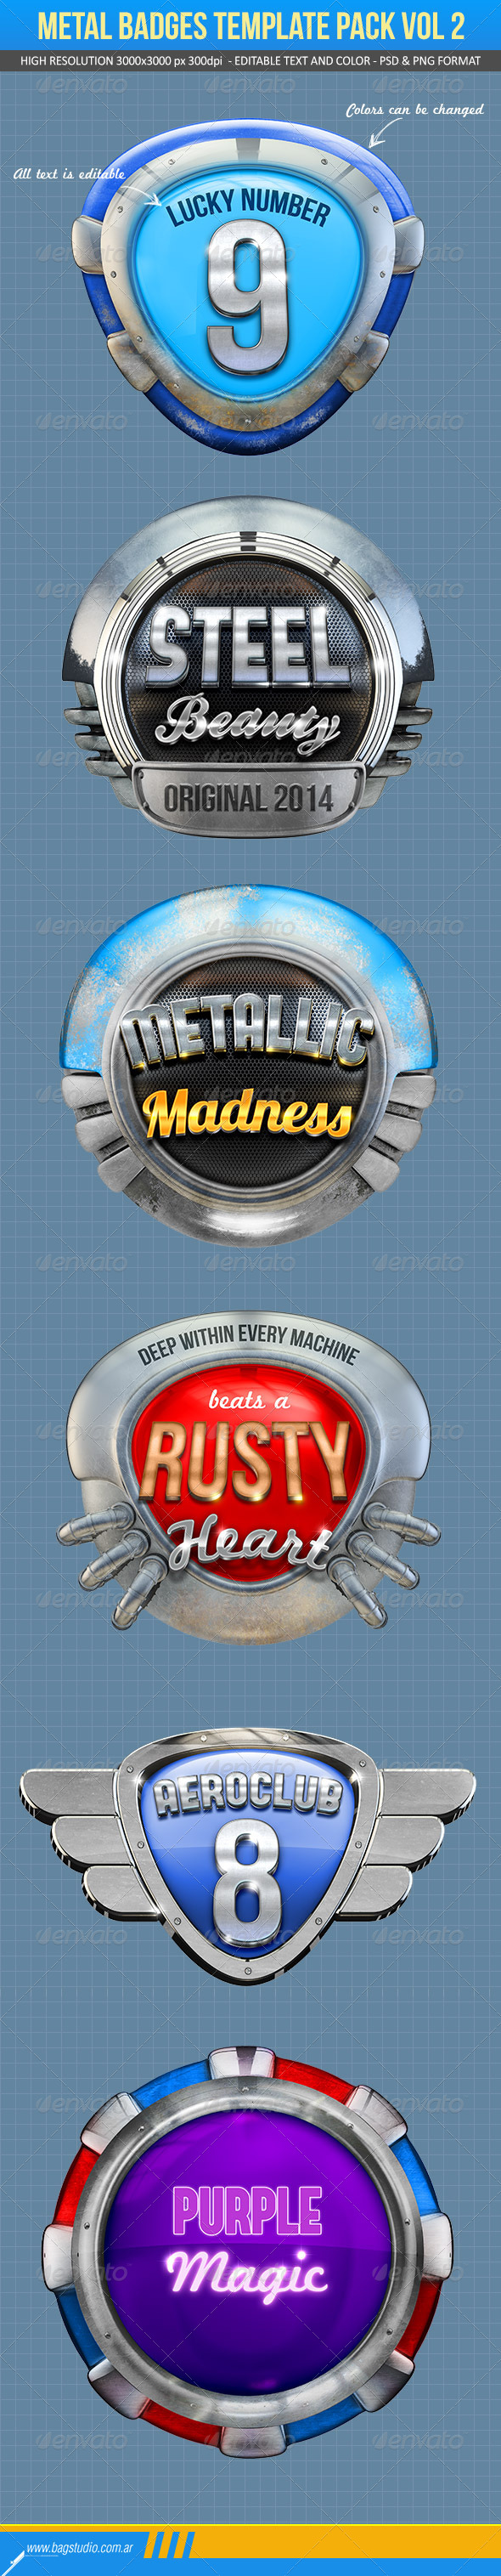 GraphicRiver Metal Badges Template Pack Vol 2 7618061